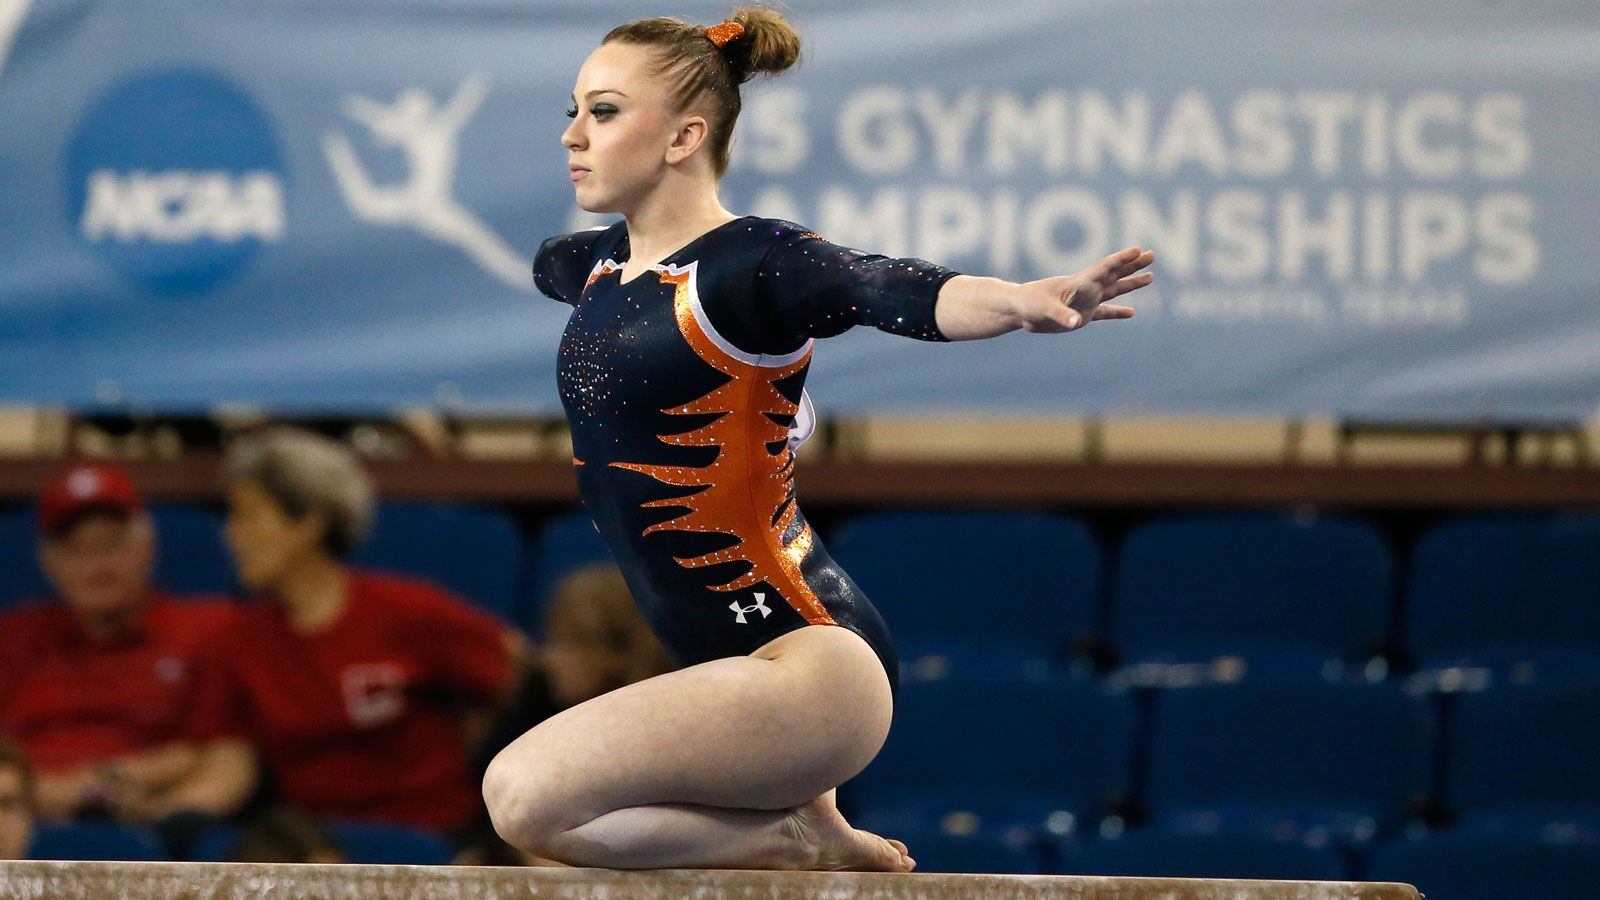 Auburn's Atkinson places eighth in beam final